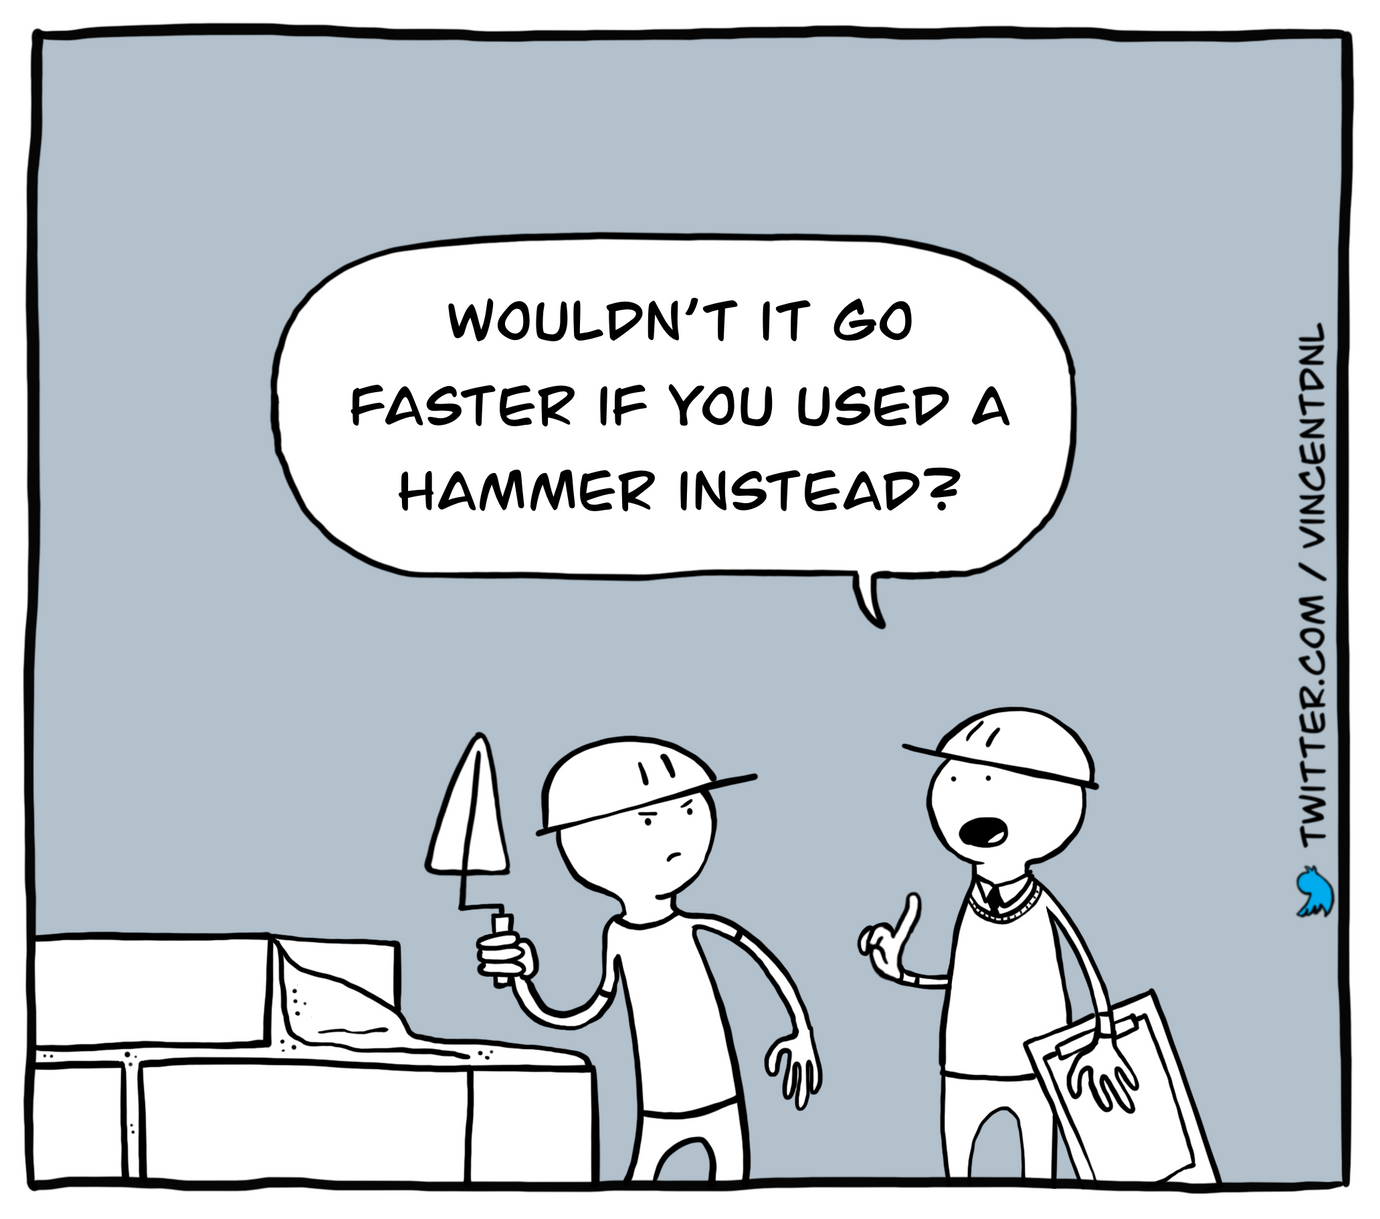 drawing - text: Wouldn't it go faster if you used a hammer instead?